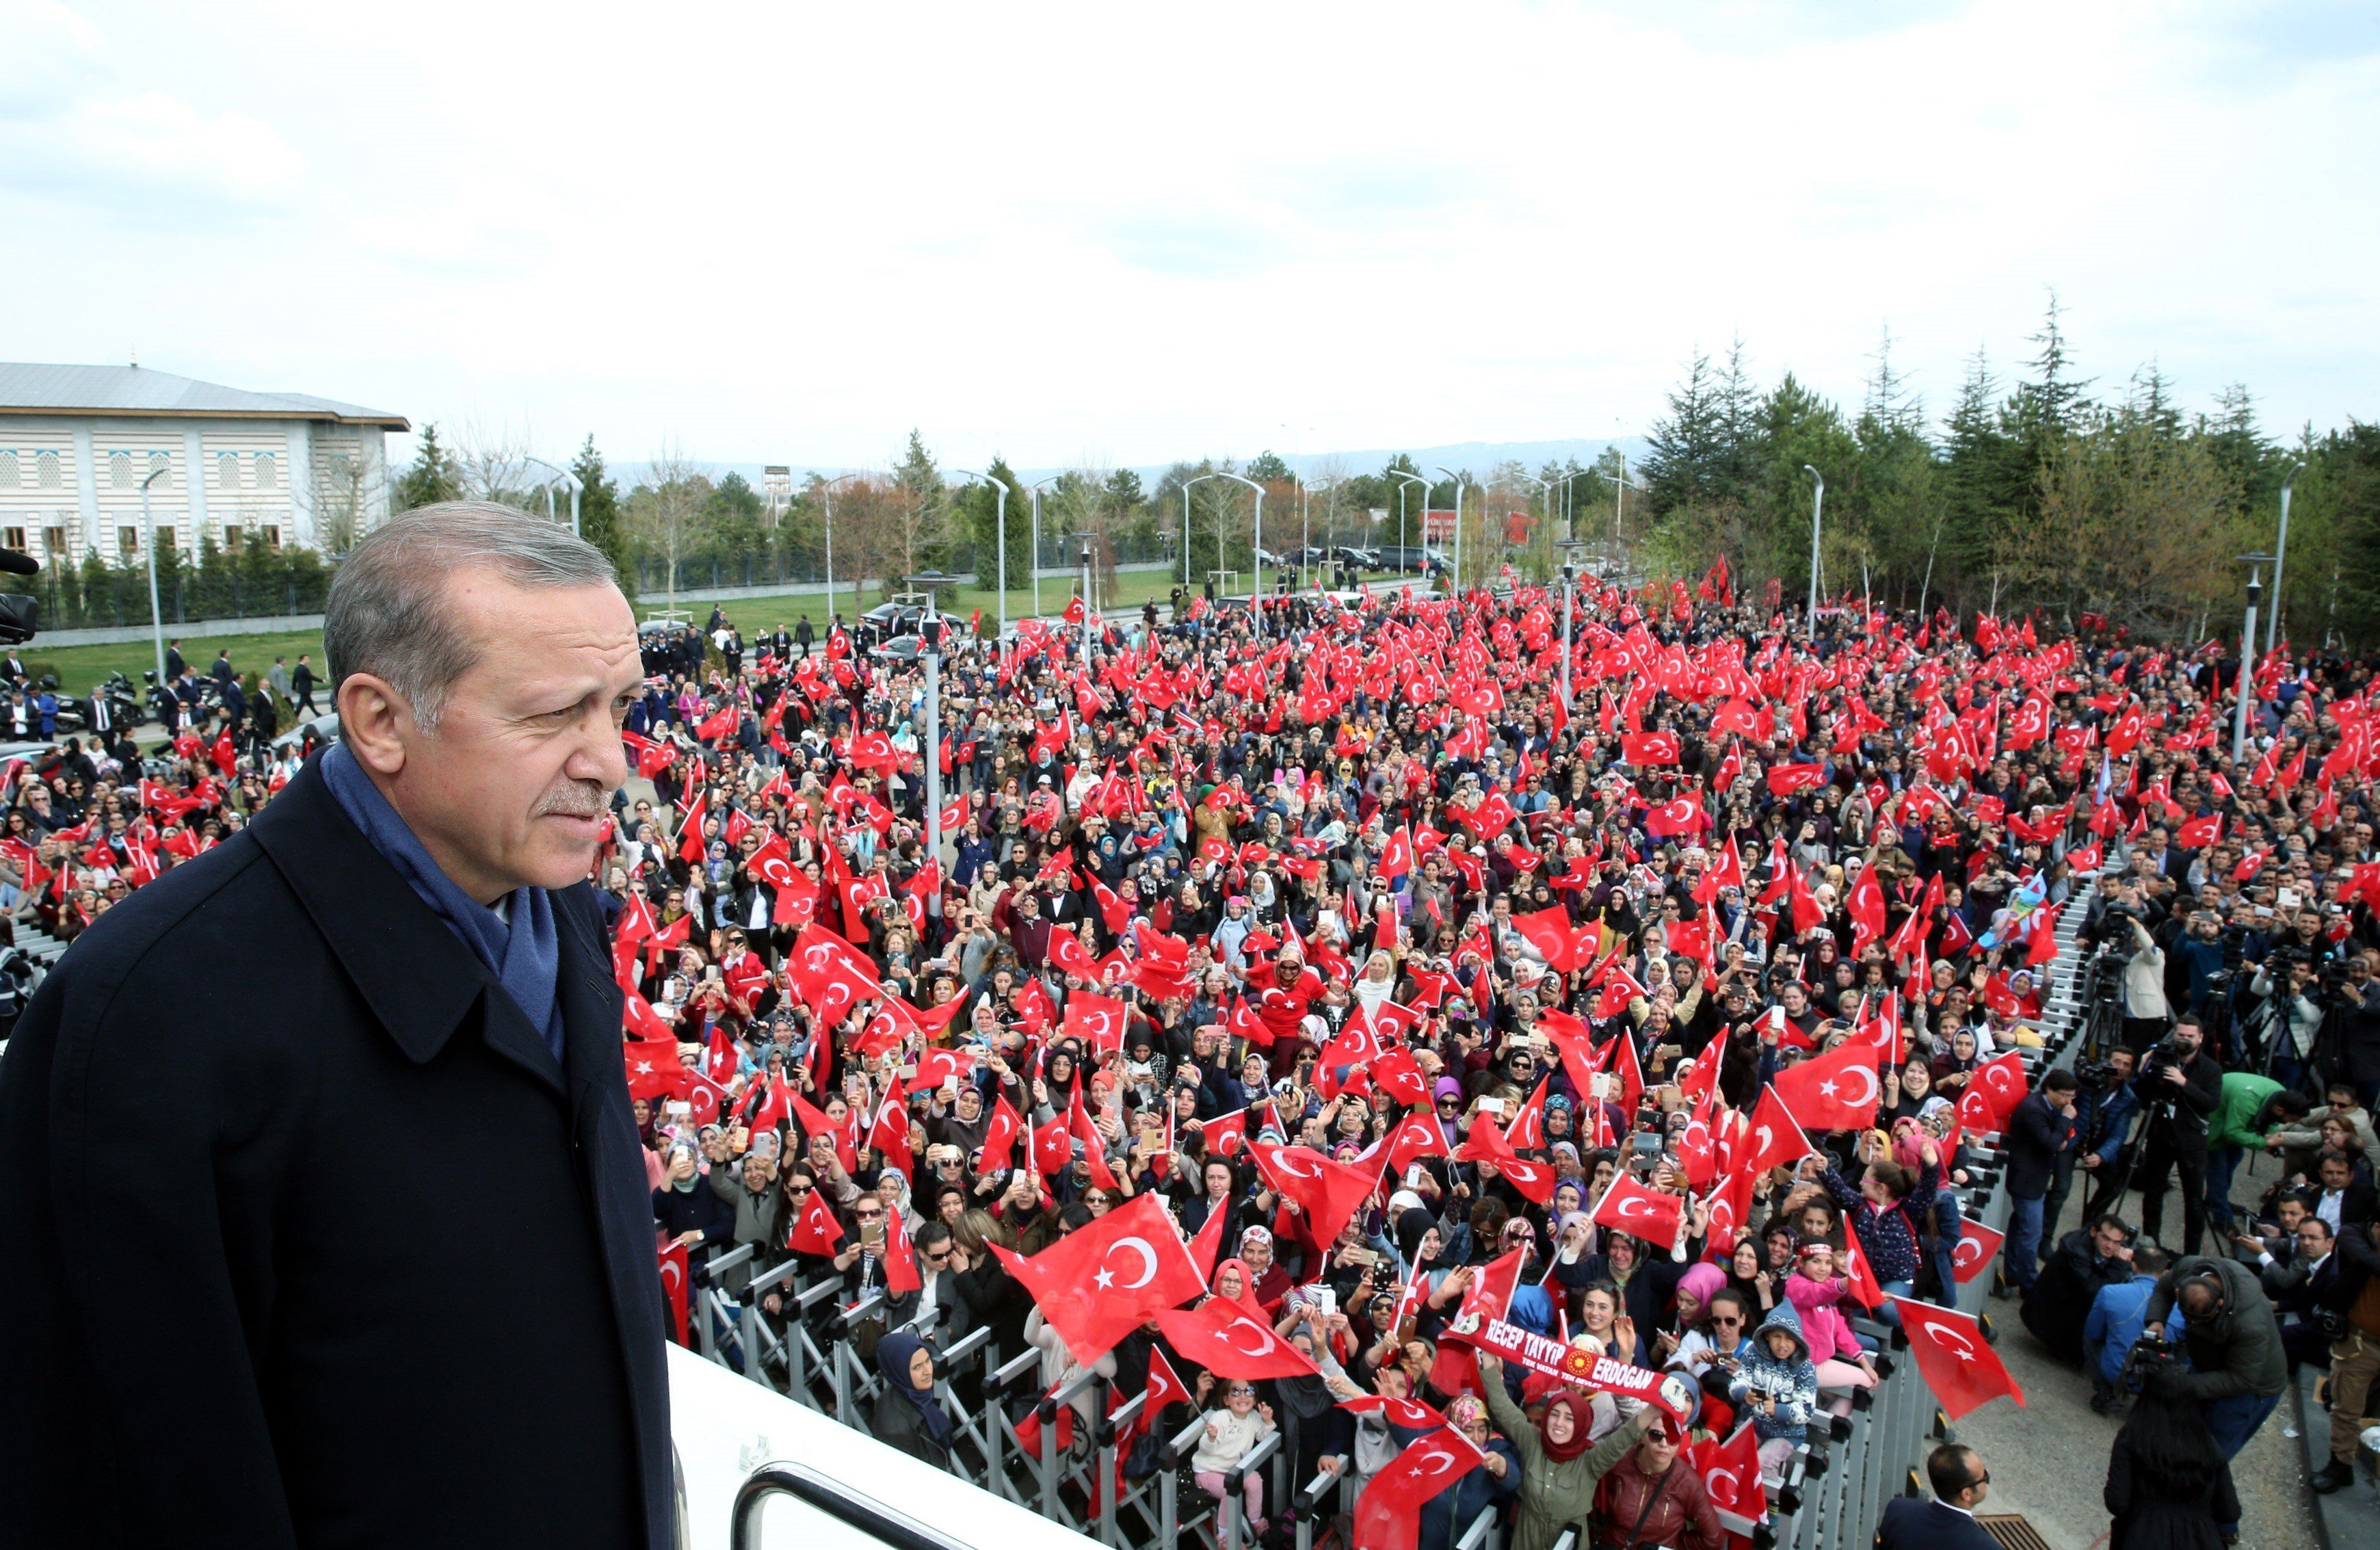 ANKARA, TURKEY - APRIL 17: (----EDITORIAL USE ONLY  MANDATORY CREDIT - 'TURKISH PRESIDENCY / YASIN BULBUL / HANDOUT' - NO MARKETING NO ADVERTISING CAMPAIGNS - DISTRIBUTED AS A SERVICE TO CLIENTS----) Turkish President Recep Tayyip Erdogan greets the crowd, who were waiting to celebrate the results of the referendum, after he arrived in the Esenboga International Airport in Ankara, Turkey on April 17, 2017.  (Photo by Turkish Presidency / Yasin Bulbul/Anadolu Agency/Getty Images)